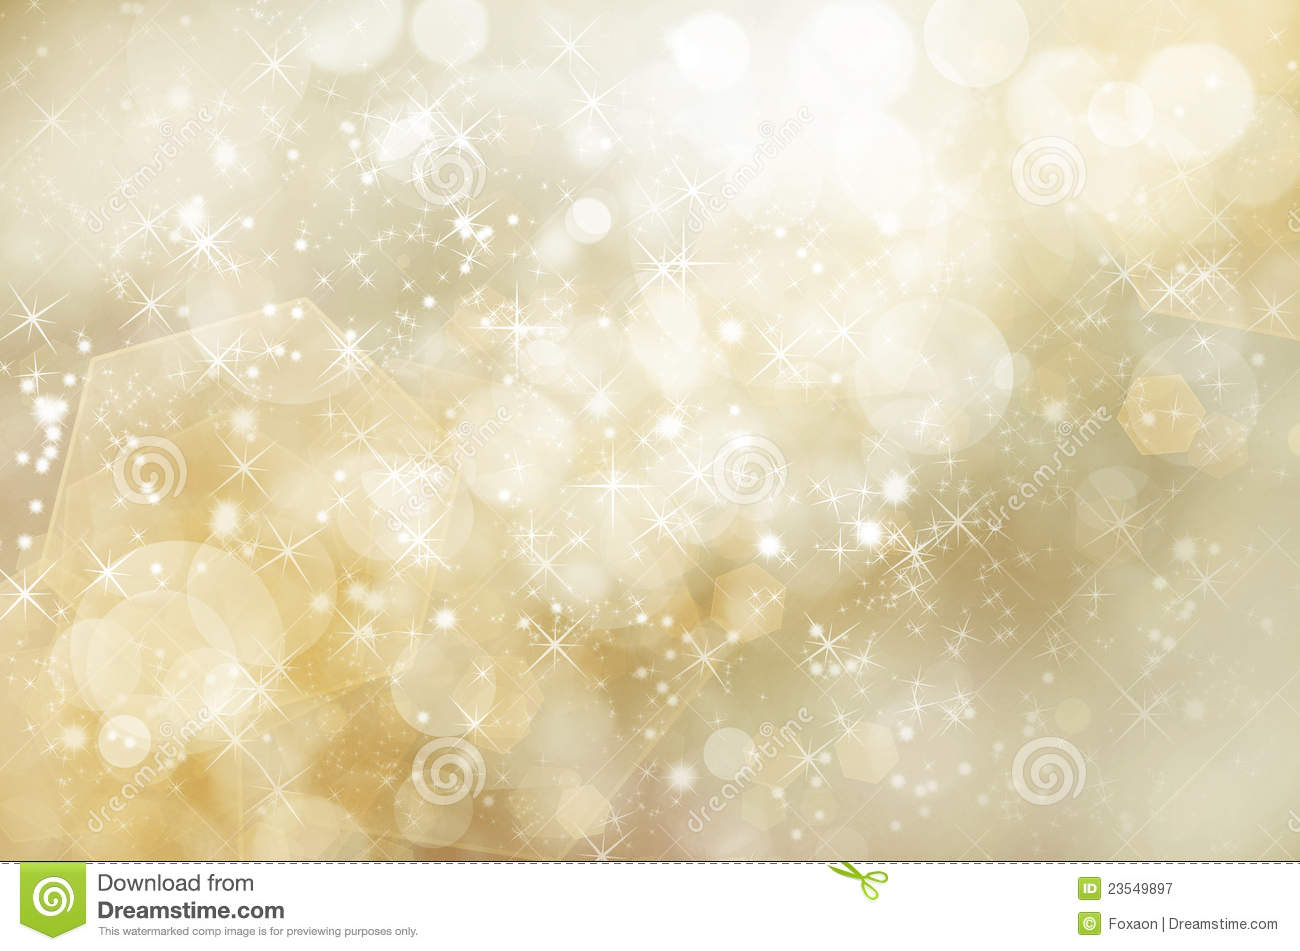 Falling Glitter Confetti Wallpapers Glittery Gold Christmas Background Royalty Free Stock